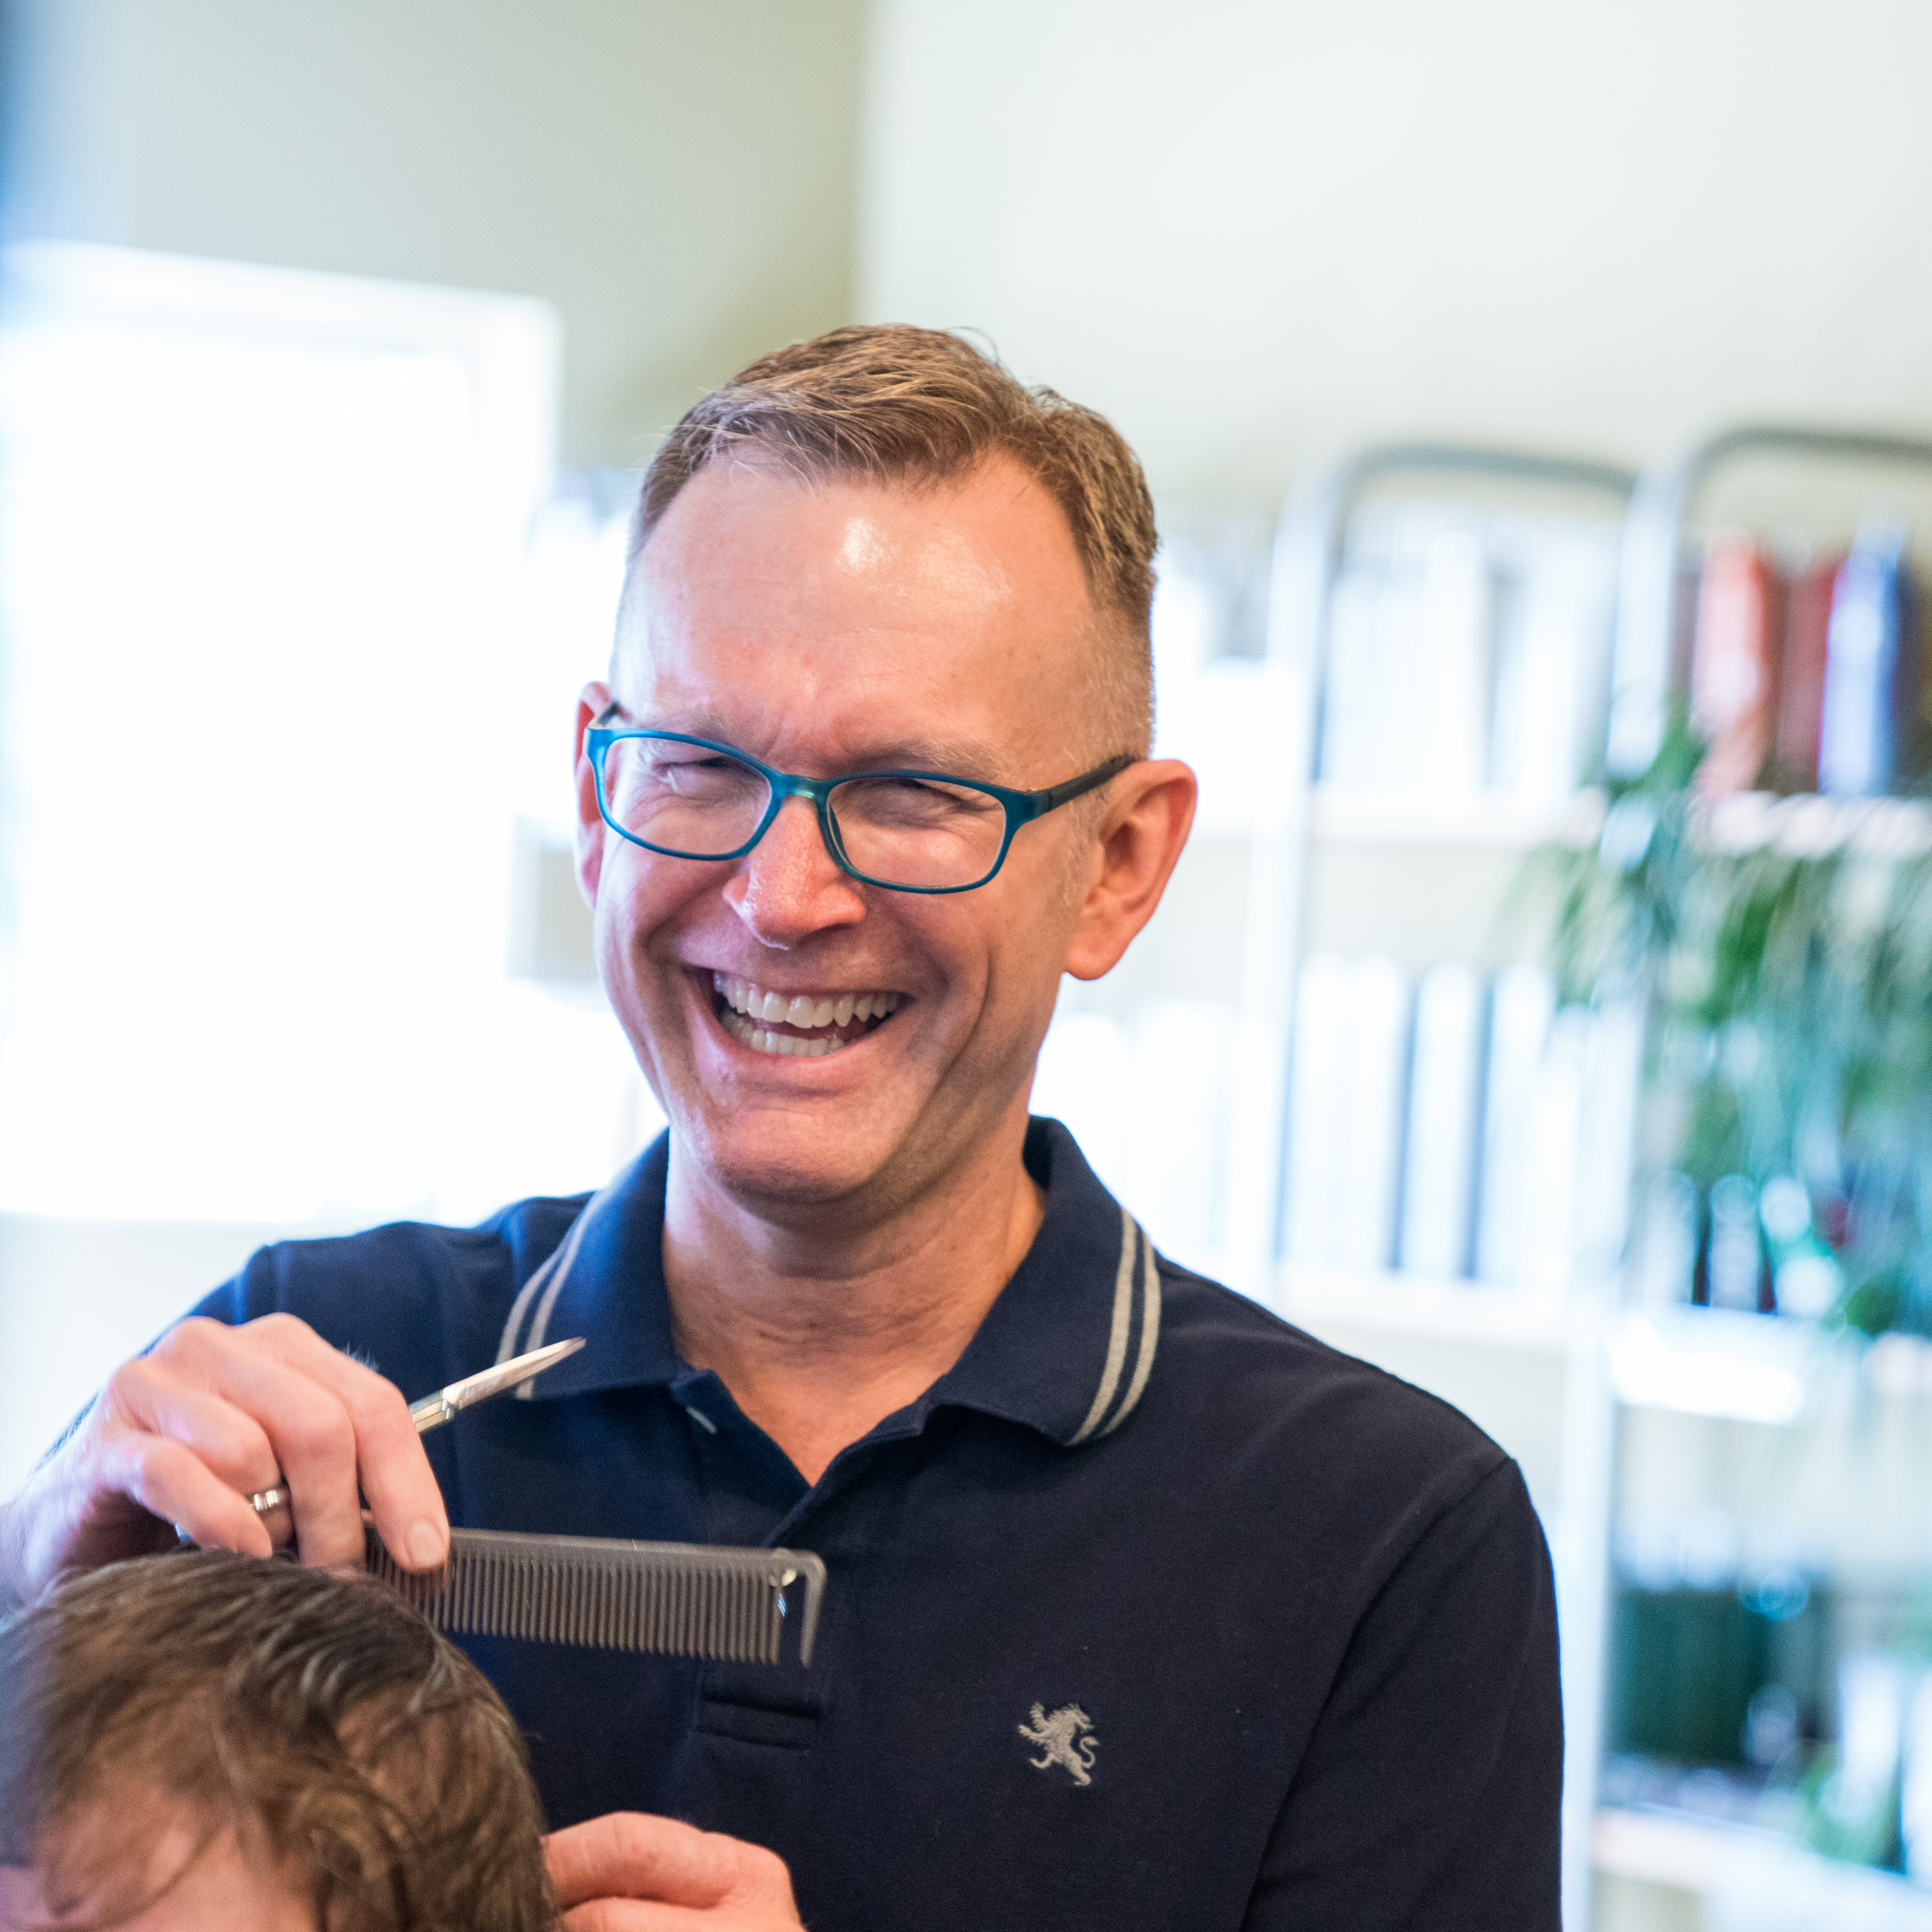 Greg Harman  Owner/Stylist  Through my work, I watch spirits lift as the people who sit in my chair see  what I see  in the mirror - something beautiful. Something positive. Something possible.  My clientele is very special to me. Many of them I have known and worked with for years... and their children...and their  children's  children. I'm quite proud of the work I've done, and I cherish the relationships I have made.  In 2003, I opened The Laura Gregory Salon with my friend of over two decades, Laura Puhl. I couldn't be more proud of this space and the atmosphere we have created together.